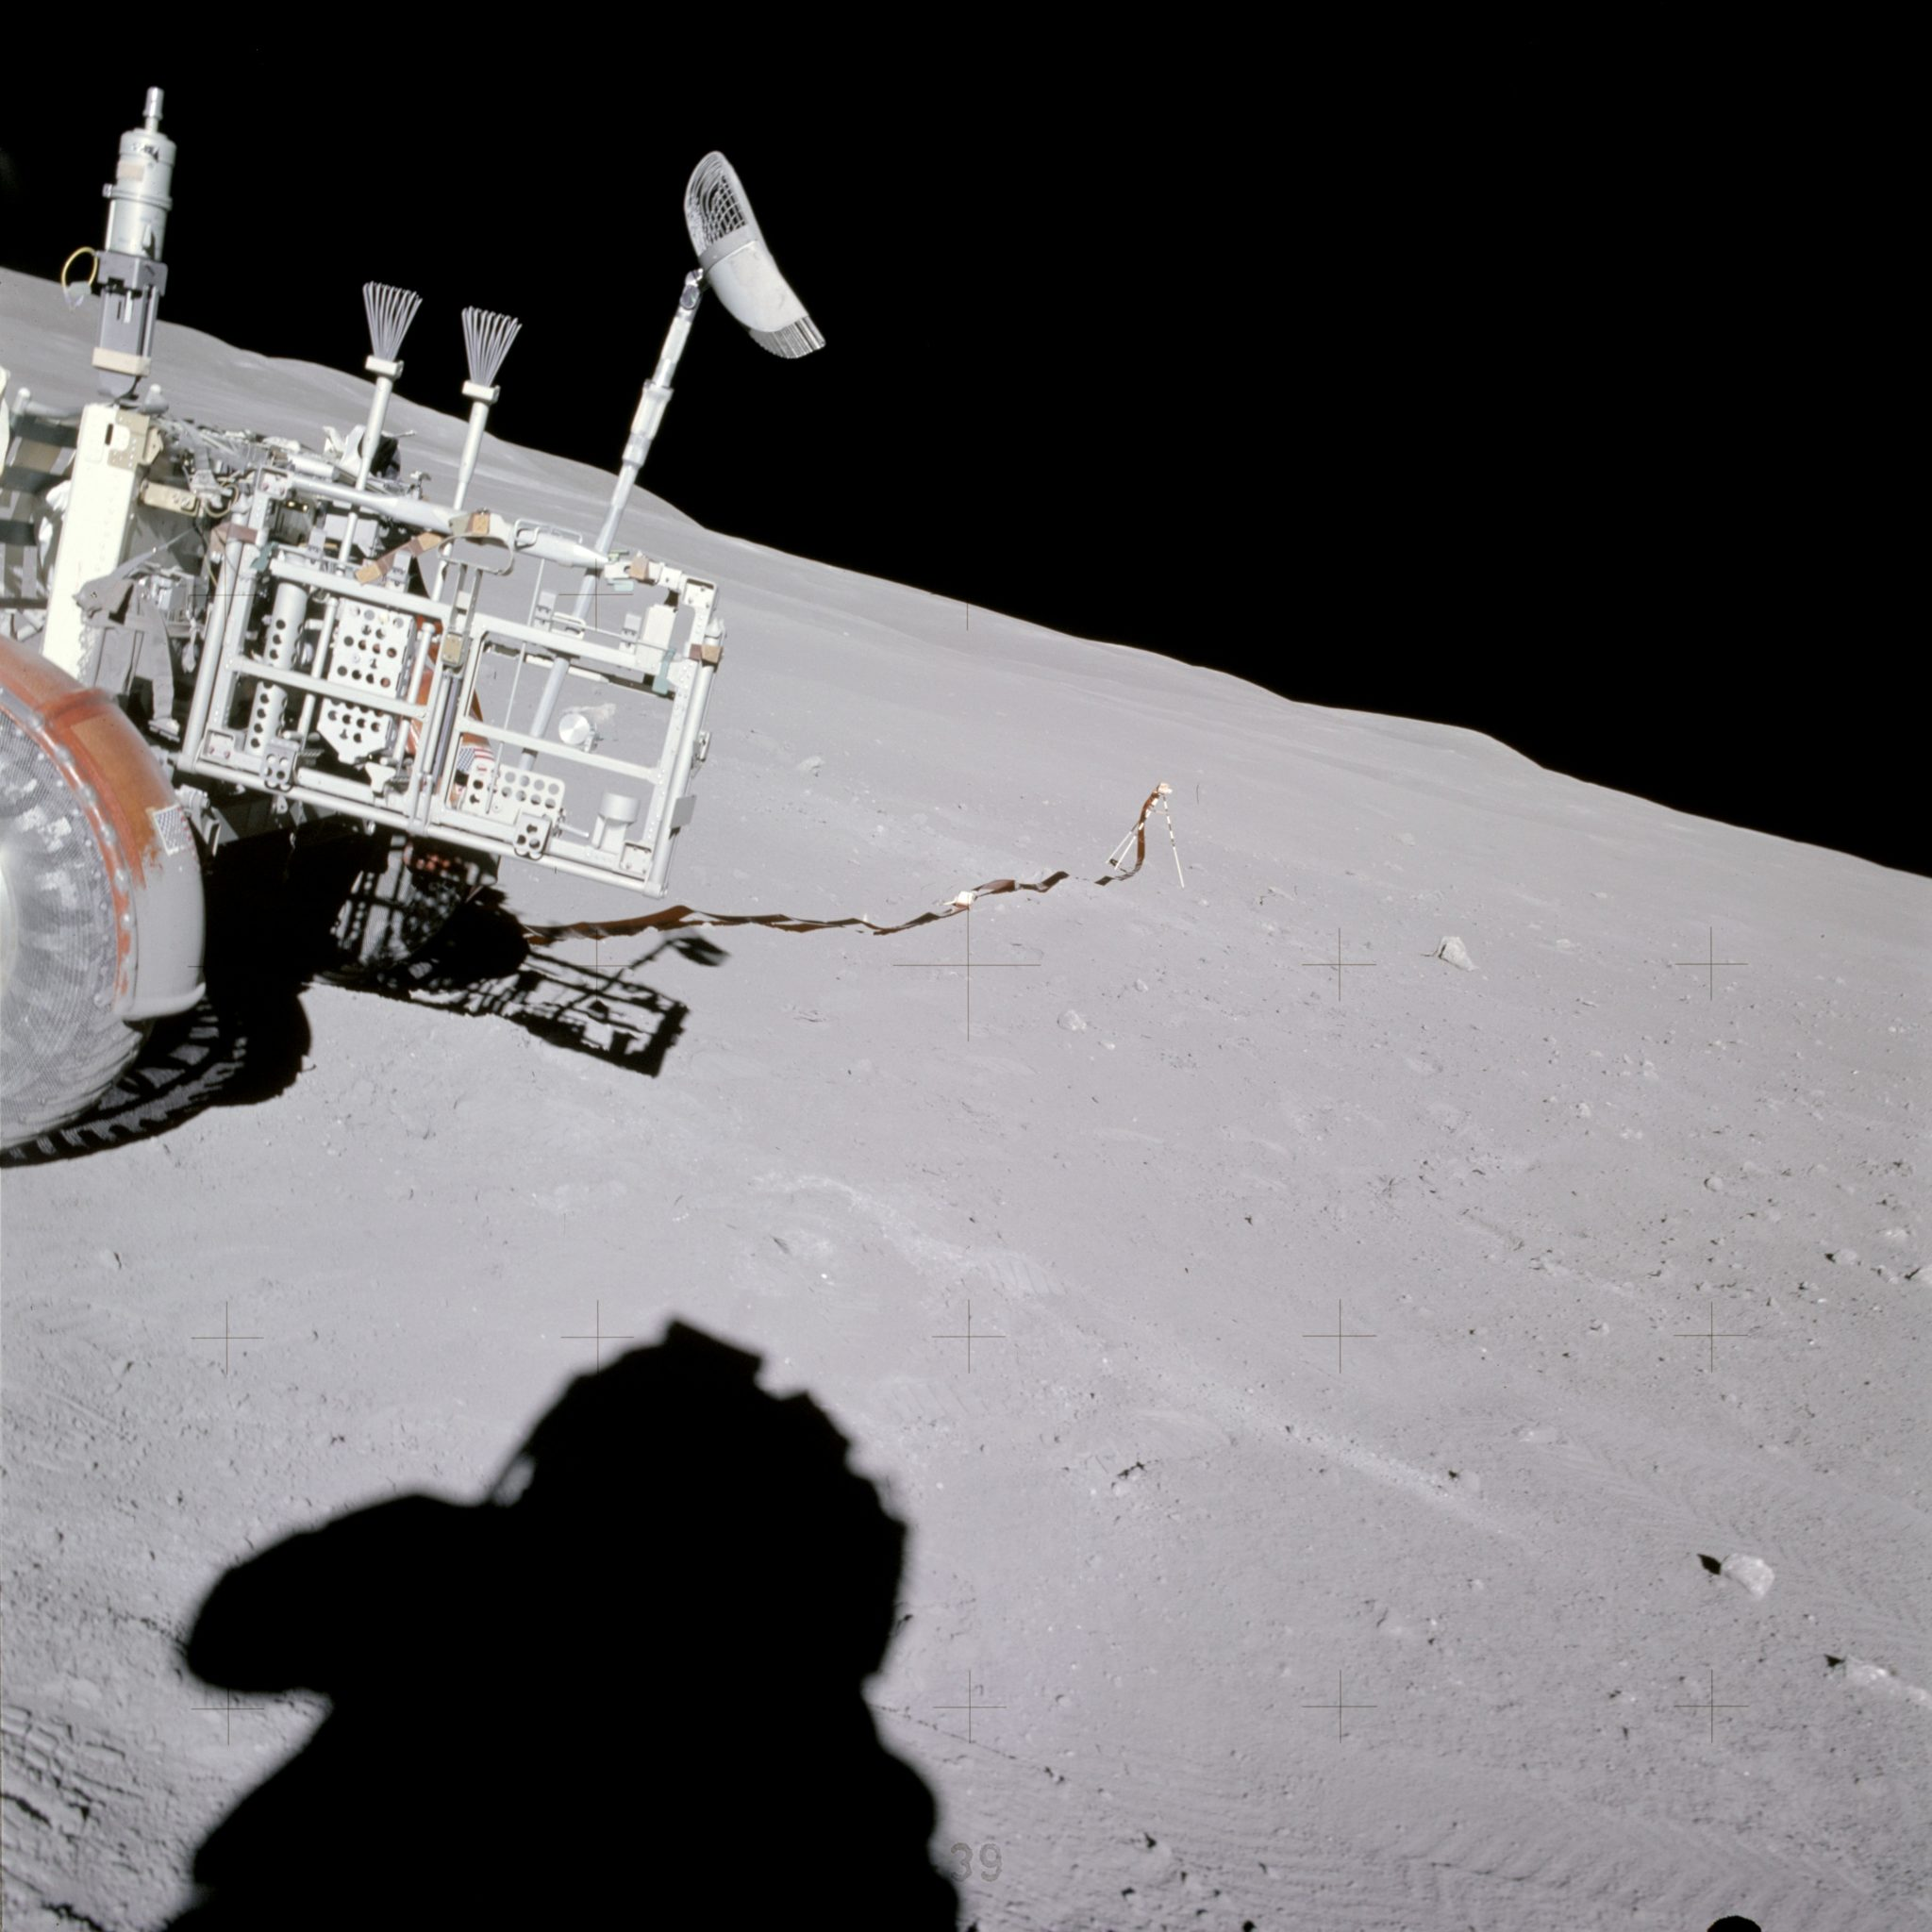 Lunar Portable Magnetometer Apollo 16 Lunar Roving Vehicle Extravehicular activity Spacewalk Moon